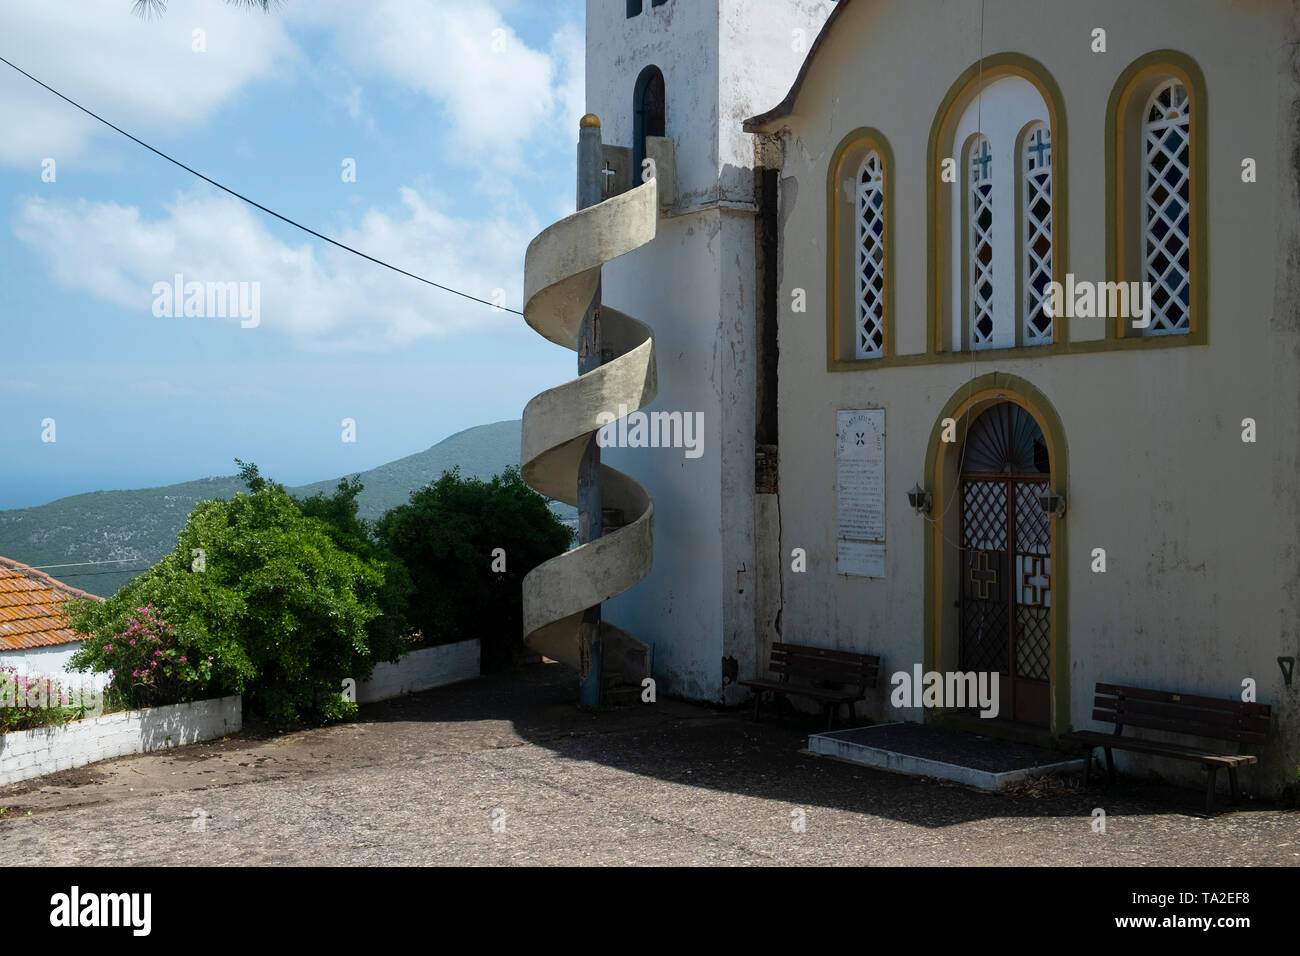 Abandoned church in Exogi, Ithaca, Greece. Ithaca, Ithaki or Ithaka is a Greek island located in the Ionian Sea to the west of continental Greece. Ithacas main island has an area of 96 square kilometres. It is the second-smallest of seven main Ionian Islands. - Stock Image